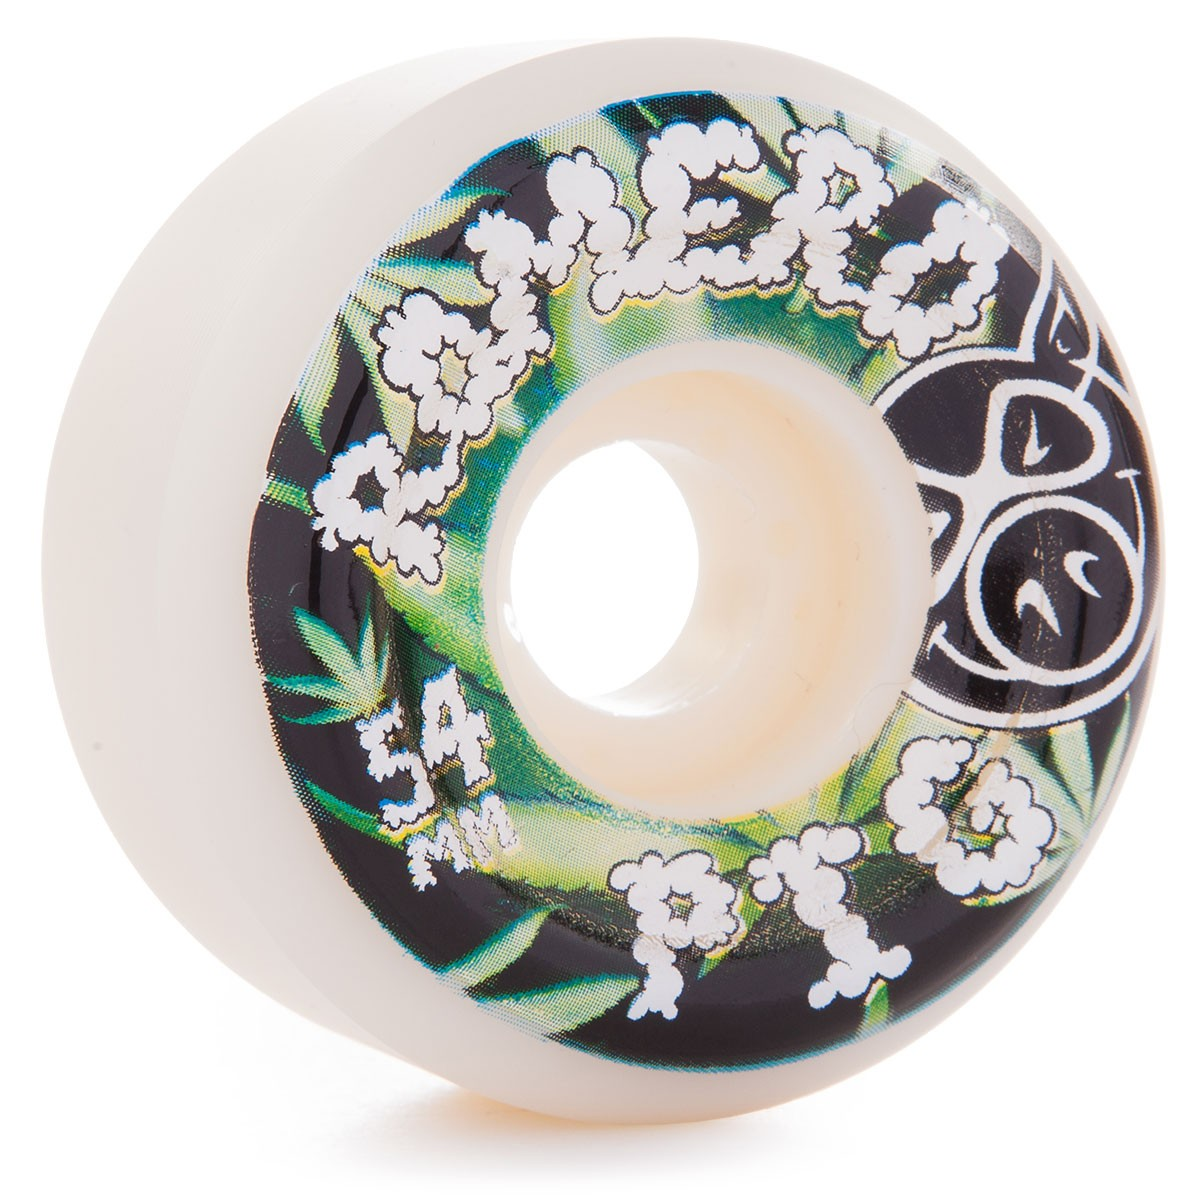 Pig Leo Romero Leaves Skateboard Wheels - 54mm 101a